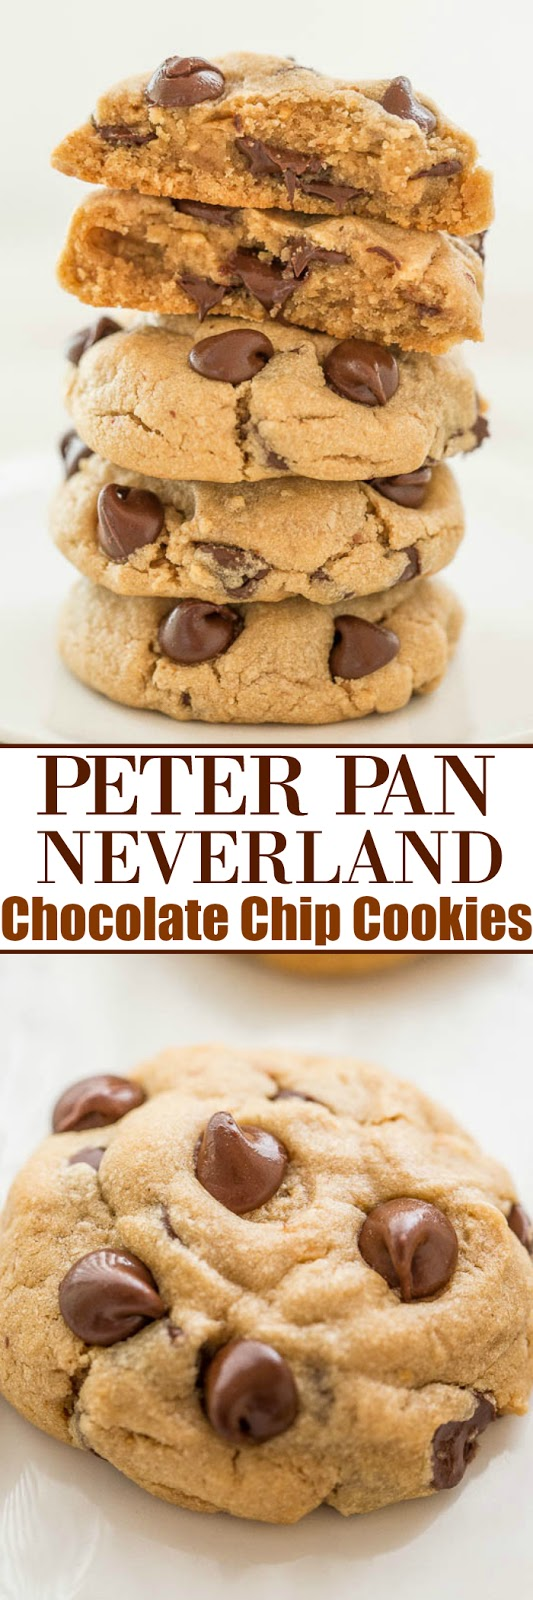 Peter Pan Neverland Chocolate Chip Cookies - Easy To Make Recipes